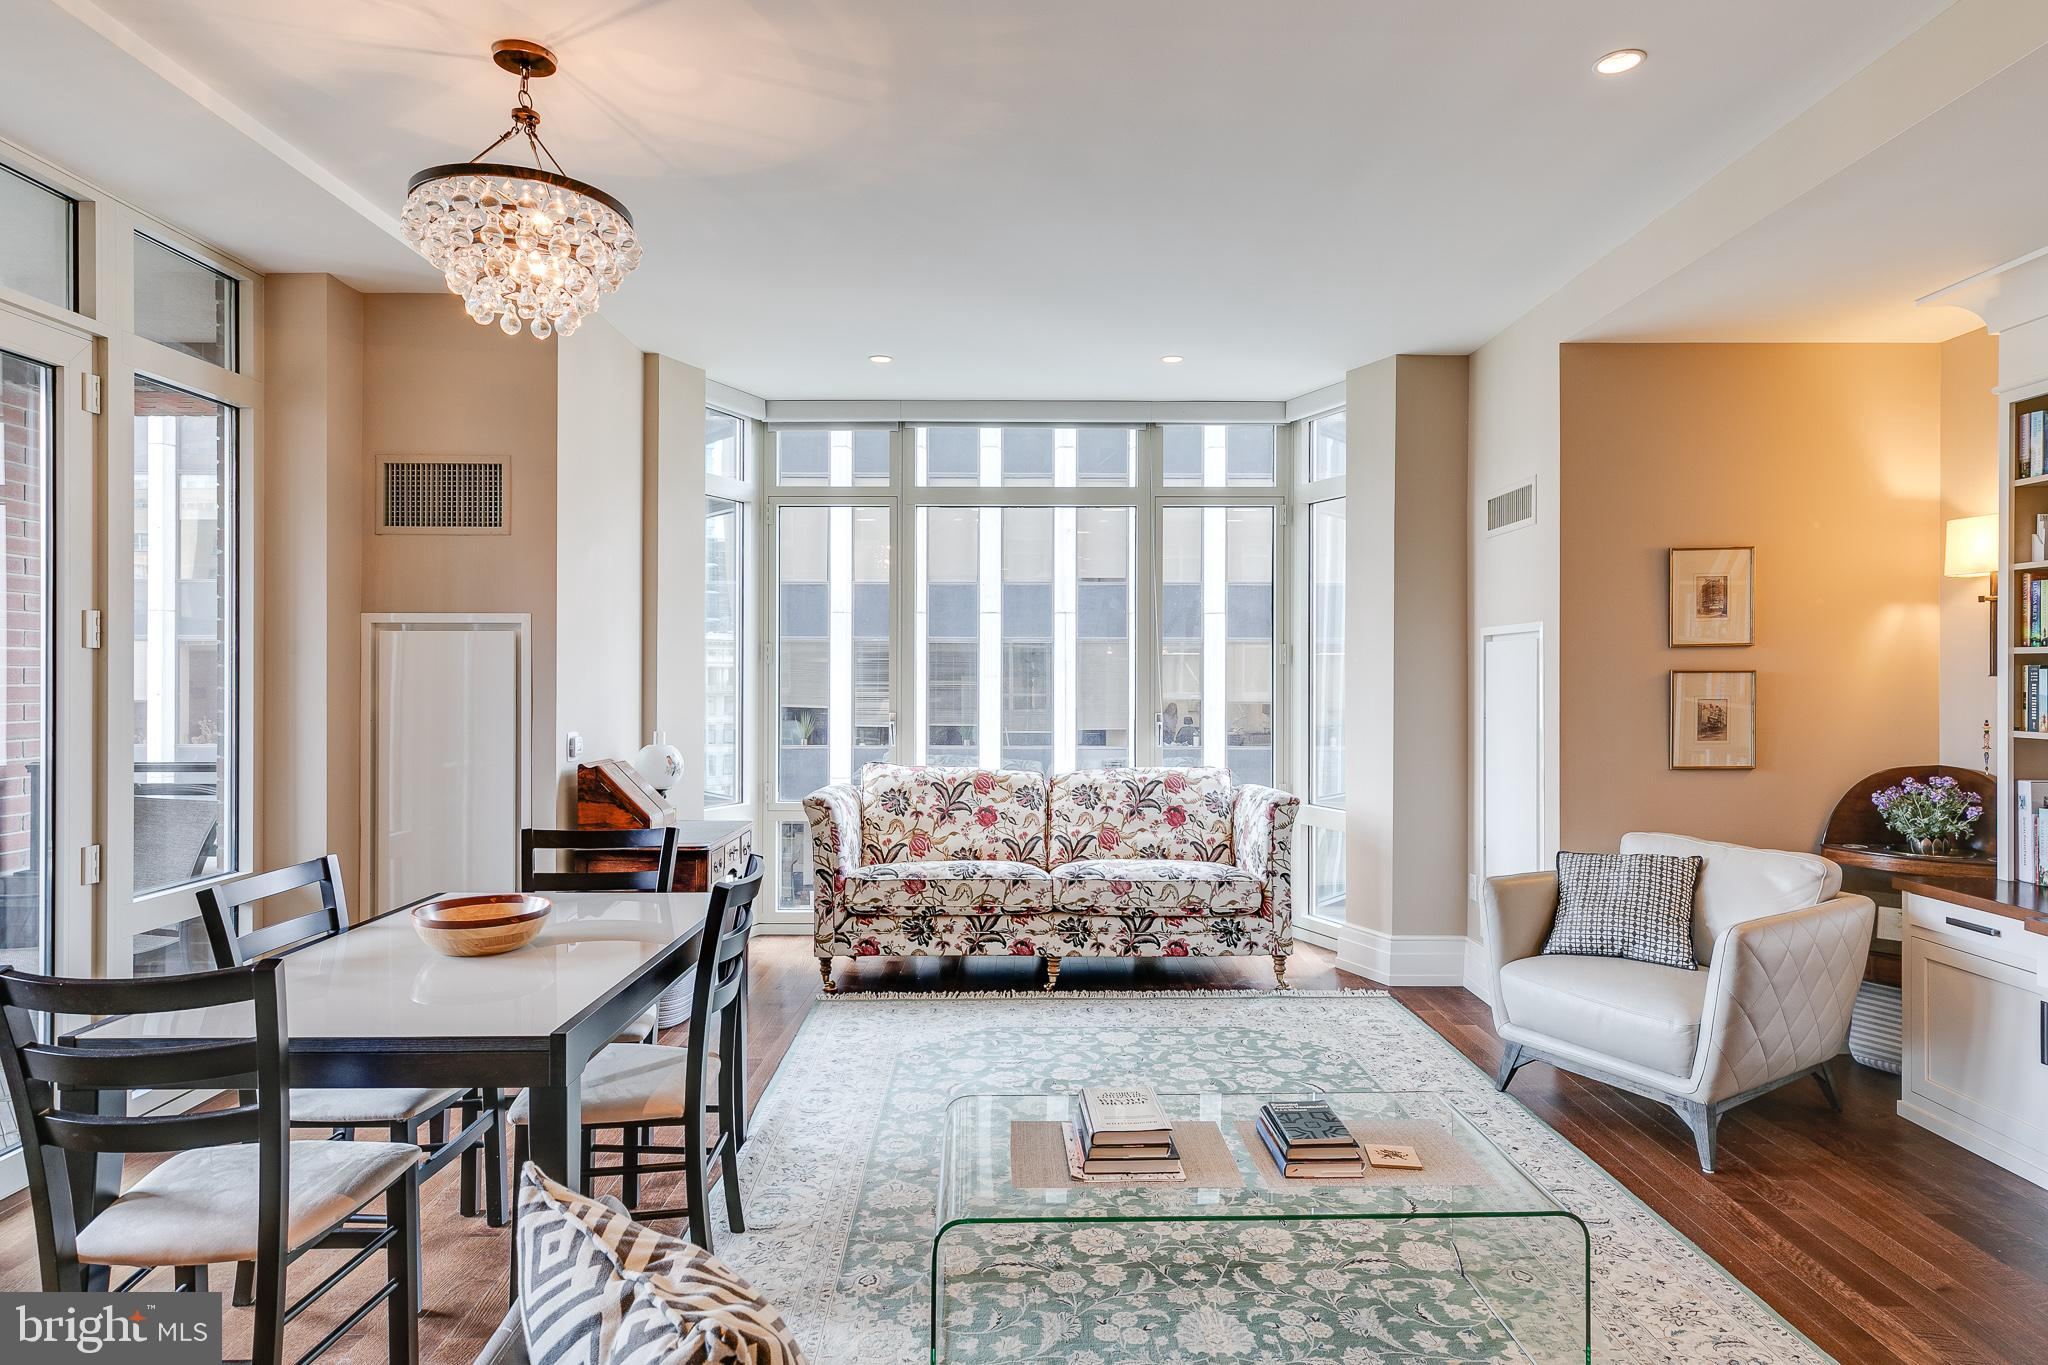 The height of Rittenhouse Luxury in one of the  neighborhood's most handsome more recent builds- this 2 bed, 2.5 bath unit overlooking the square is a quiet and comfortable retreat above town!  Enter the elegant lobby from an intimate courtyard off of 18th street at the square, and head to floor 10. Unit 1005 opens into a foyer lined with large coat and linen closets, and door to half bath. Turn right into the elegantly outfitted kitchen, with stone counters, glass panel backsplash, and stainless appliance suite, including SubZero refrigerator. A large central island provides excellent space for dining or a workspace for the chef as they look beyond into the open living/dining room. The sun-filled living/dining features a floor-to-ceiling bay window on axis, with stately built-in desk/shelving on the north wall and balcony entrance on the south. Head out to the zen brick and wood balcony, privately nestled several floors above Rittenhouse Square treetops. Head back inside to the end of the entry foyer, where you'll find the primary bedroom. This, large, bright south facing room also overlooks the park, and offers twin walk-in closets. The en-suite bath is fitted with an oversized standing shower, separate soaking tub, and dual vanity. Across the living room is the second bedroom, with large closet, floor-to-ceiling window nook, and en-suite with oversized shower. Beyond your unit, enjoy the many amenities of 10 Rittenhouse including an amenity floor, outdoor gardens/terrace, guest suite, catering kitchen/event room, library, temperature controlled wine storage, designated item storage, fitness center, and pool/spa. Transportation about town is a breeze with a chauffeured BMW 740i town car, bike storage/maintenance area, and valet parking. You're steps away from SEPTA's many in-town bus lines, and a few blocks from the Broad Street Subway and Market Street Subway-Surface Trolley. Enjoy fabulous meals in and around Rittenhouse Square including Parc, Barclay Prime, The